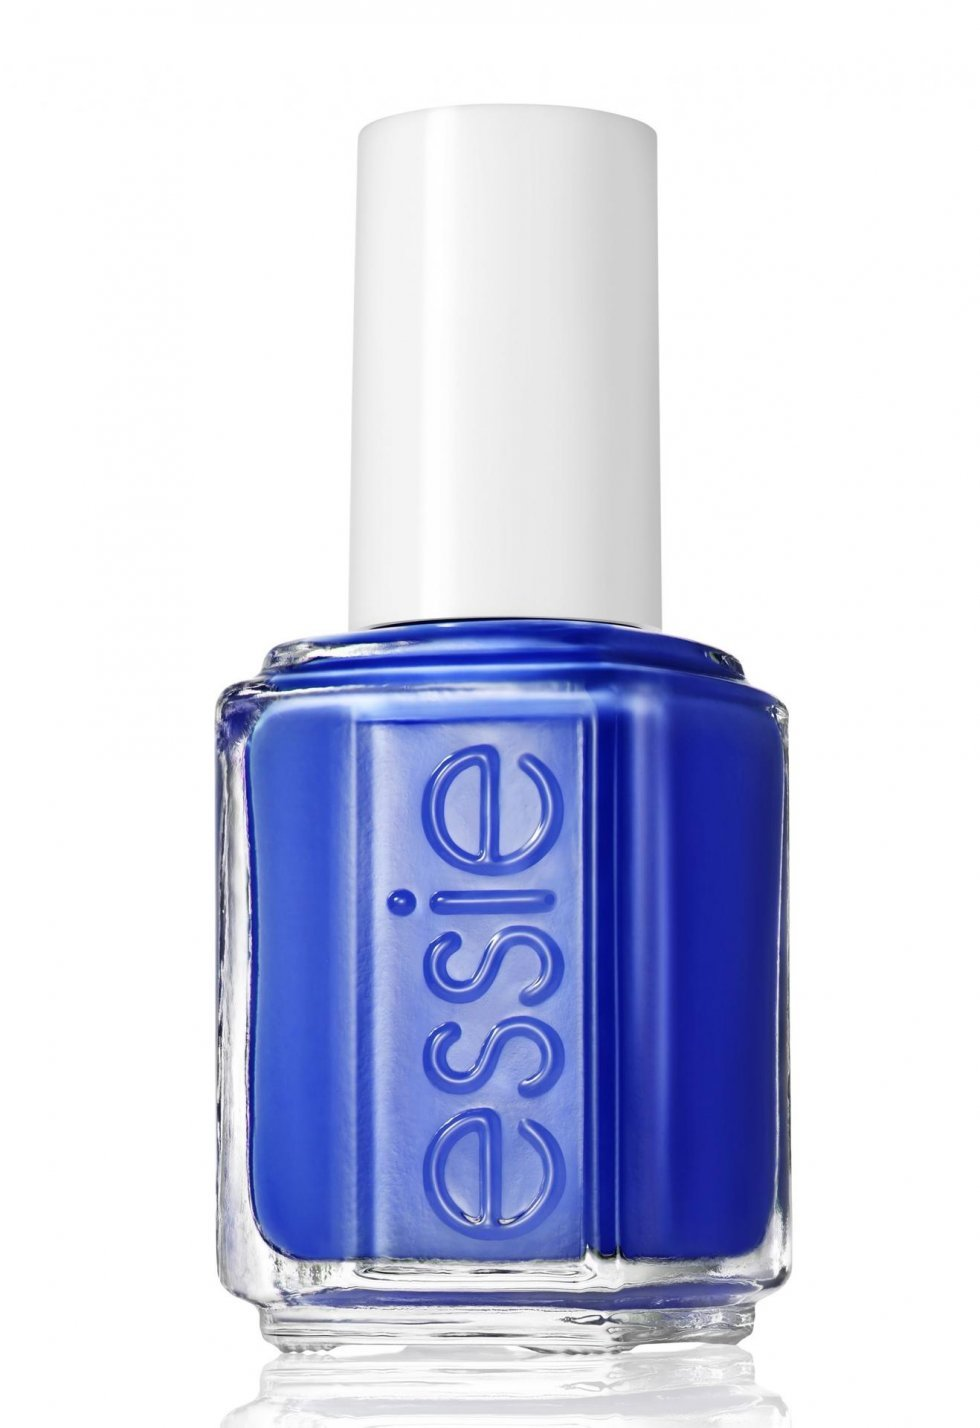 essie butler please - essie vinter 2012/2013